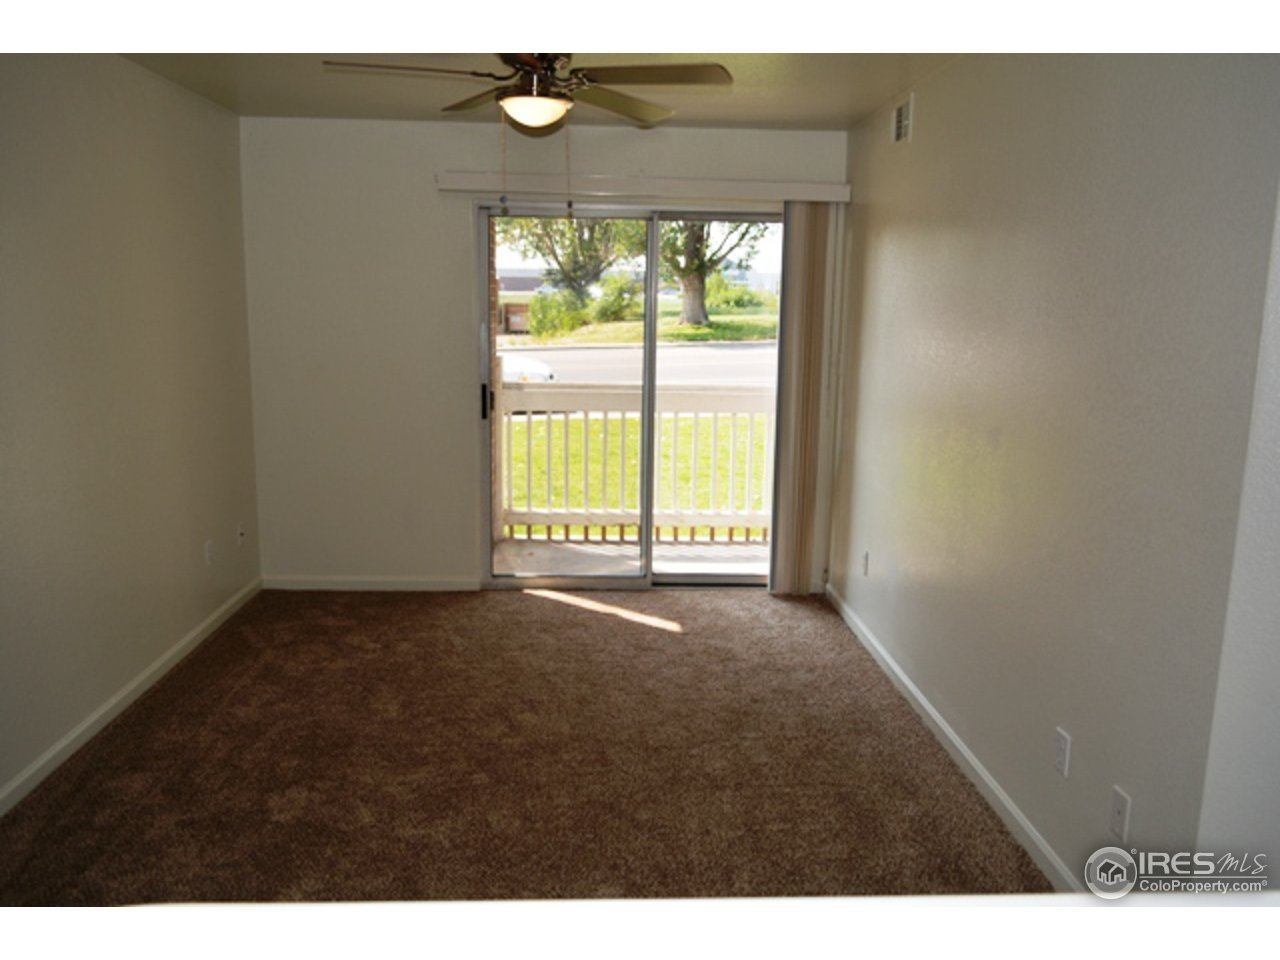 2856 17th ave #103, greeley, co 80631   mls# 831701   redfin